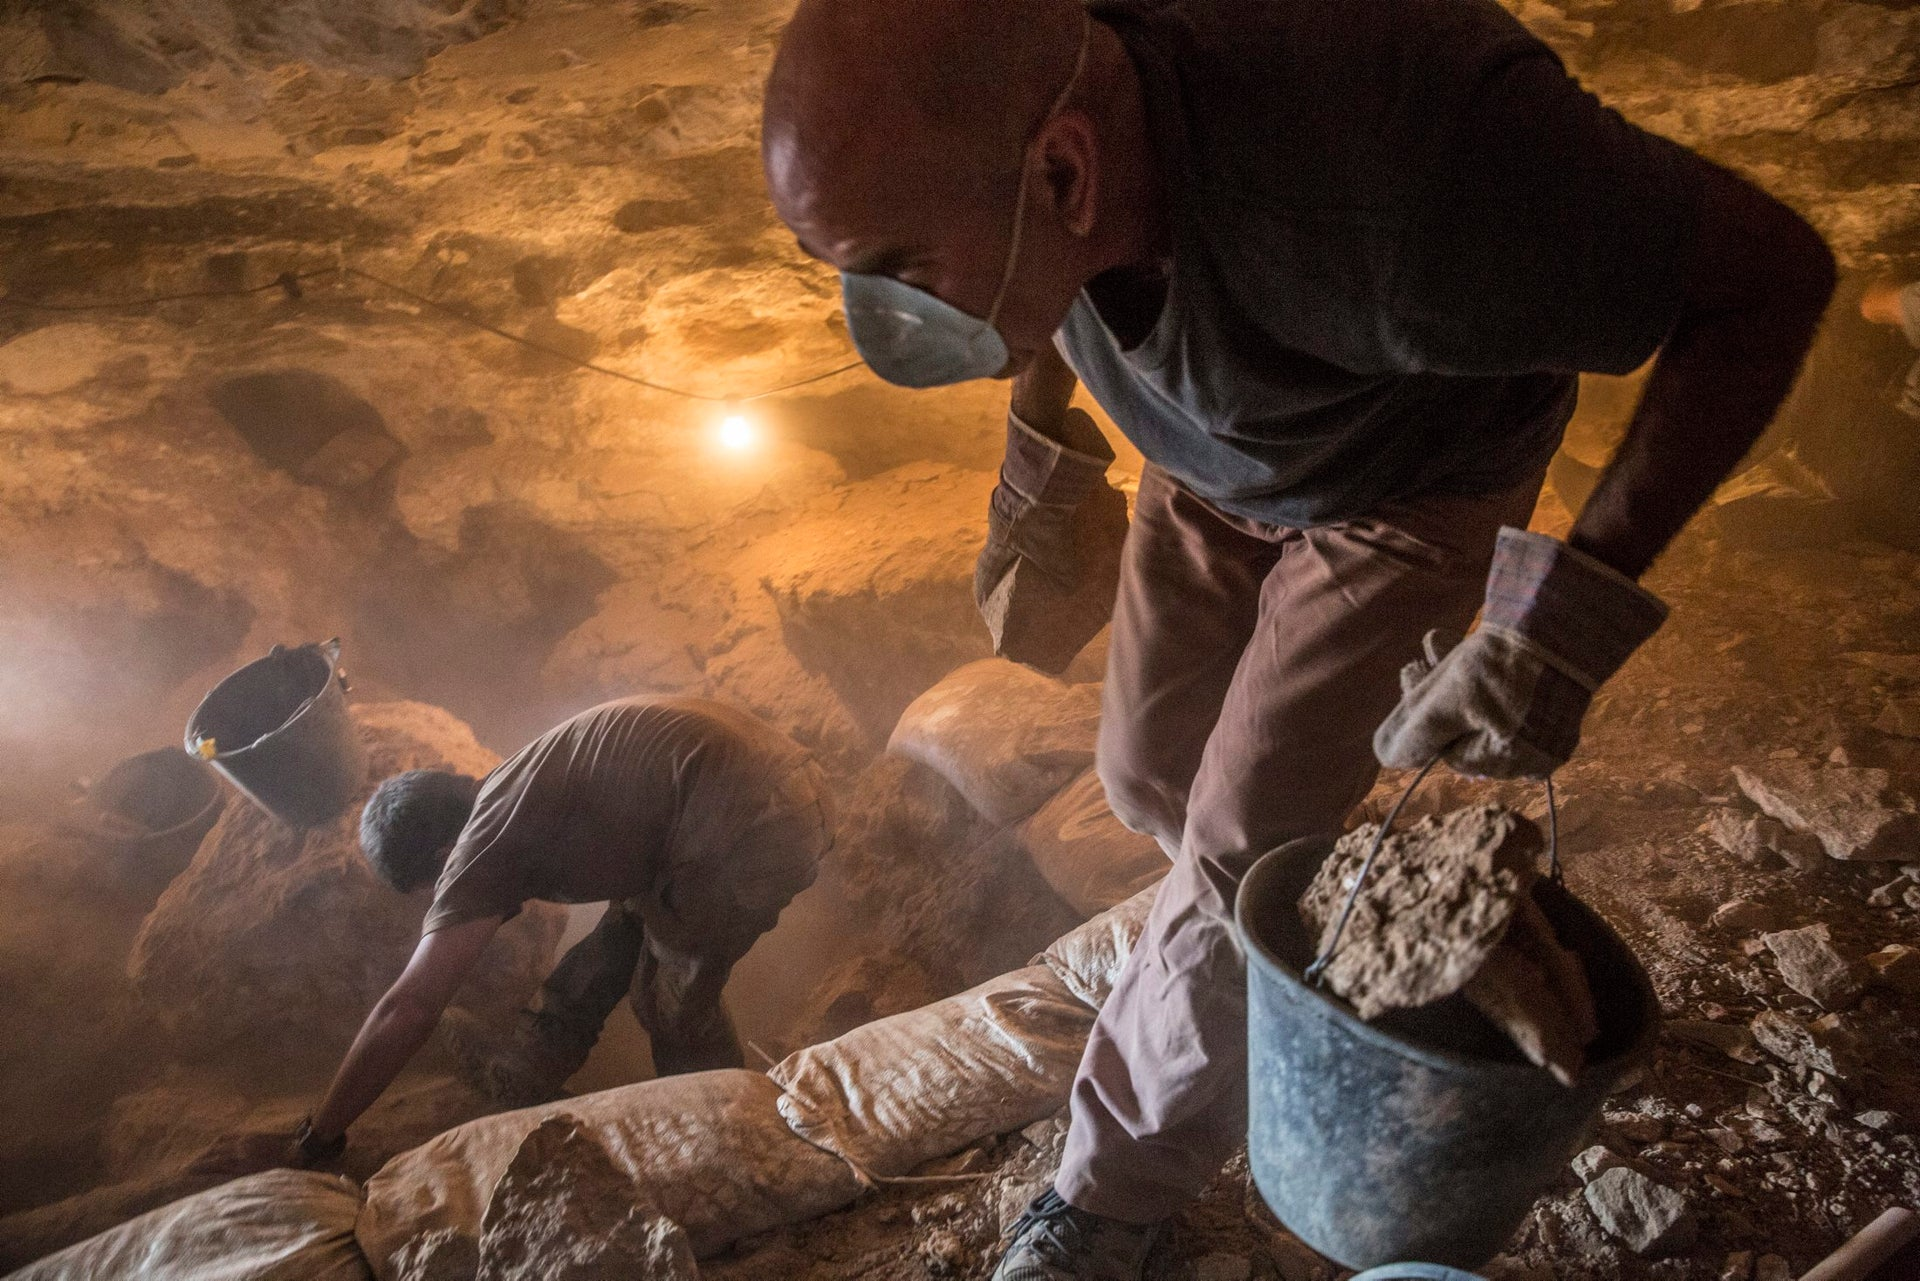 DUST TO DUST: Some 25 diggers are working in the cave at any one time.